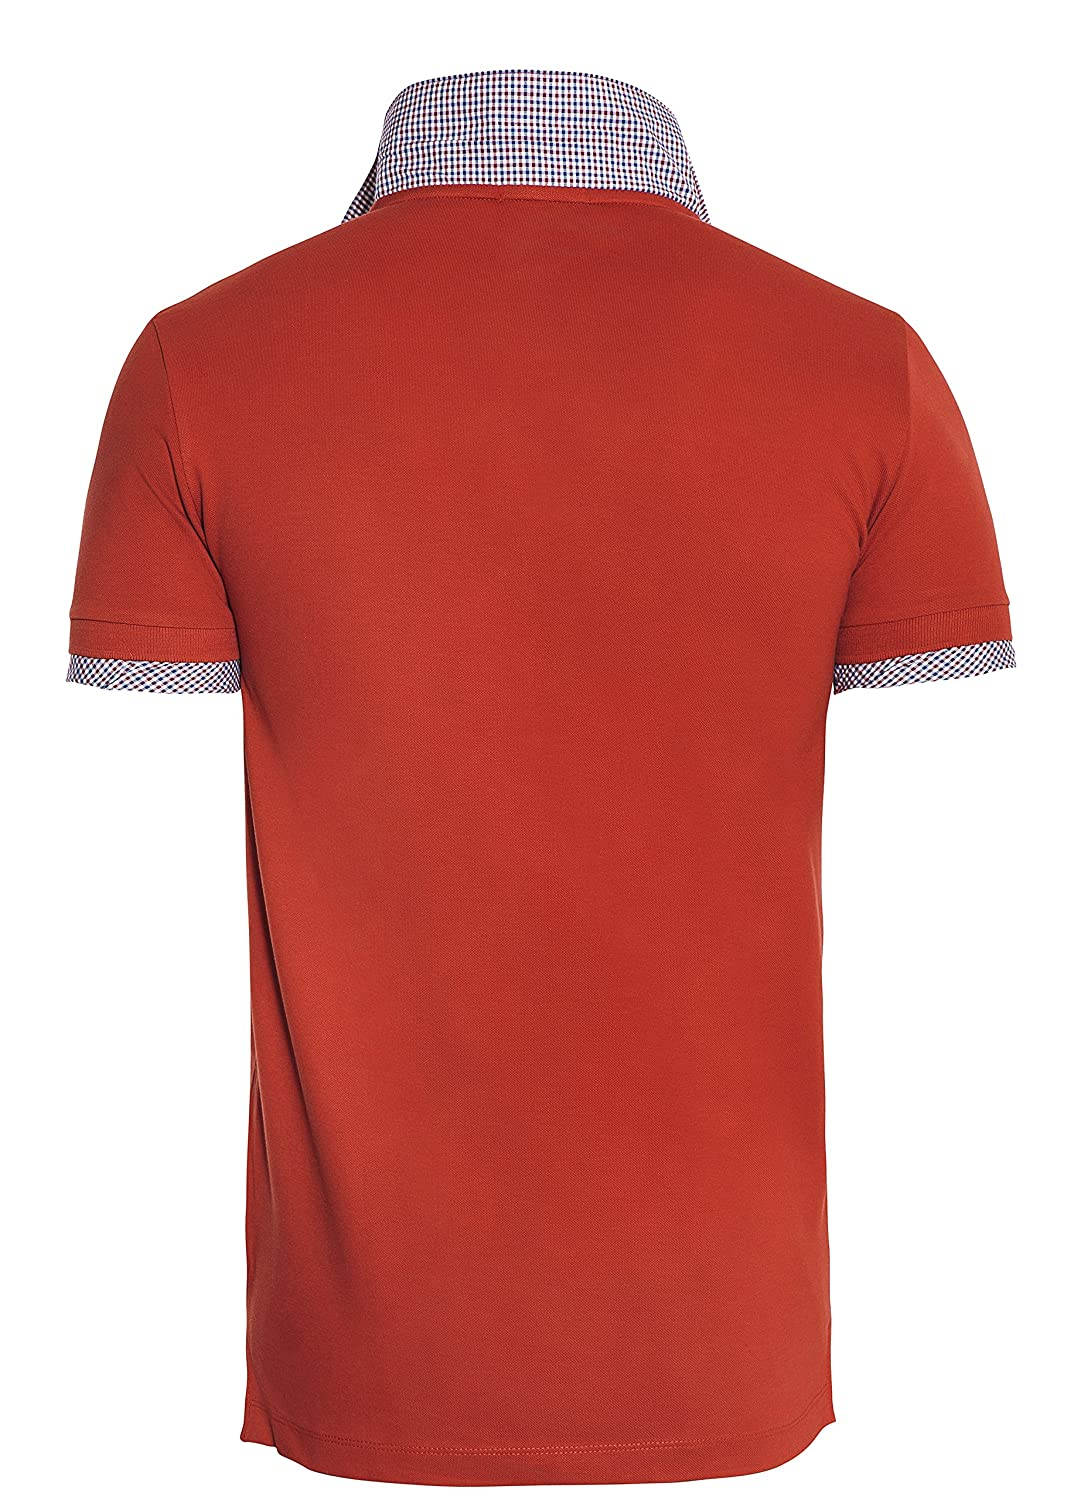 Beverly Hills Polo Club - Polo - para Hombre Rojo S: Amazon.es ...